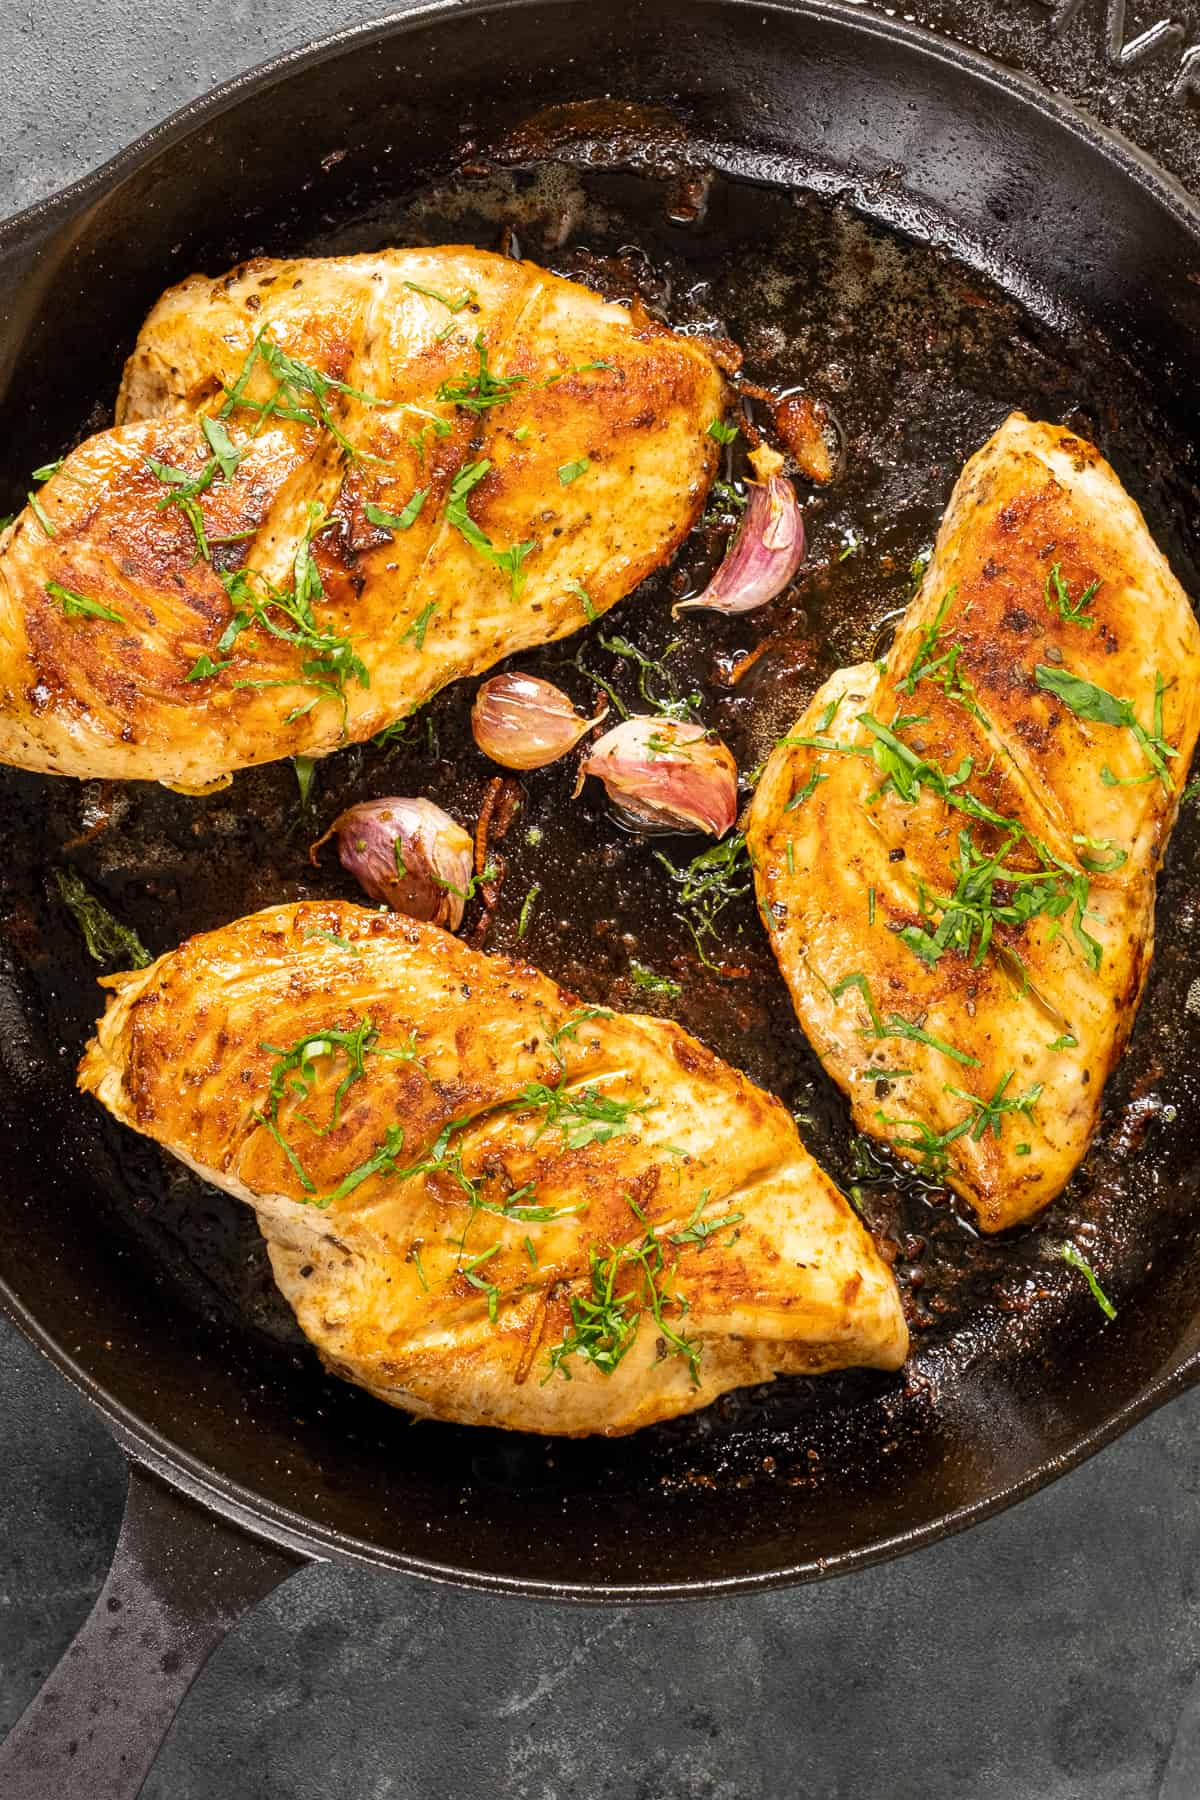 Cooked chicken breasts garnished with chopped parsley and garlic cloves in a cast iron skillet.